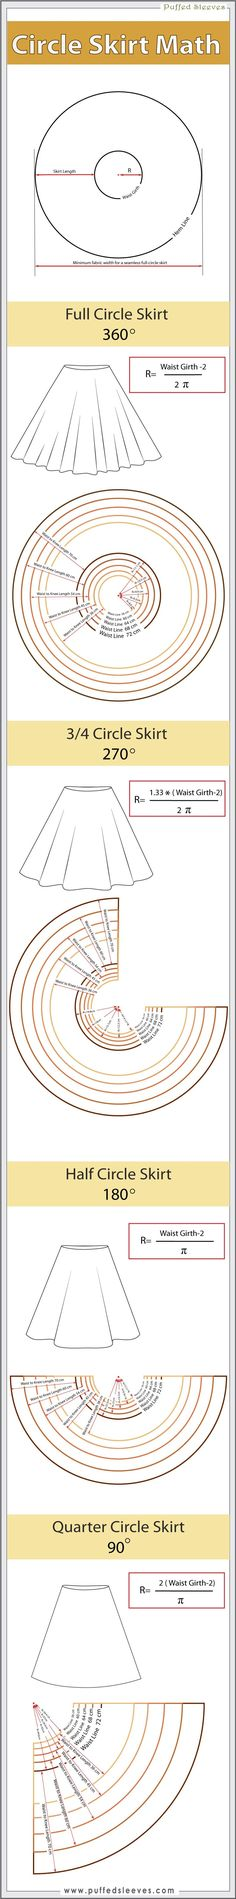 Circle skirt pattern                                                                                                                                                      More